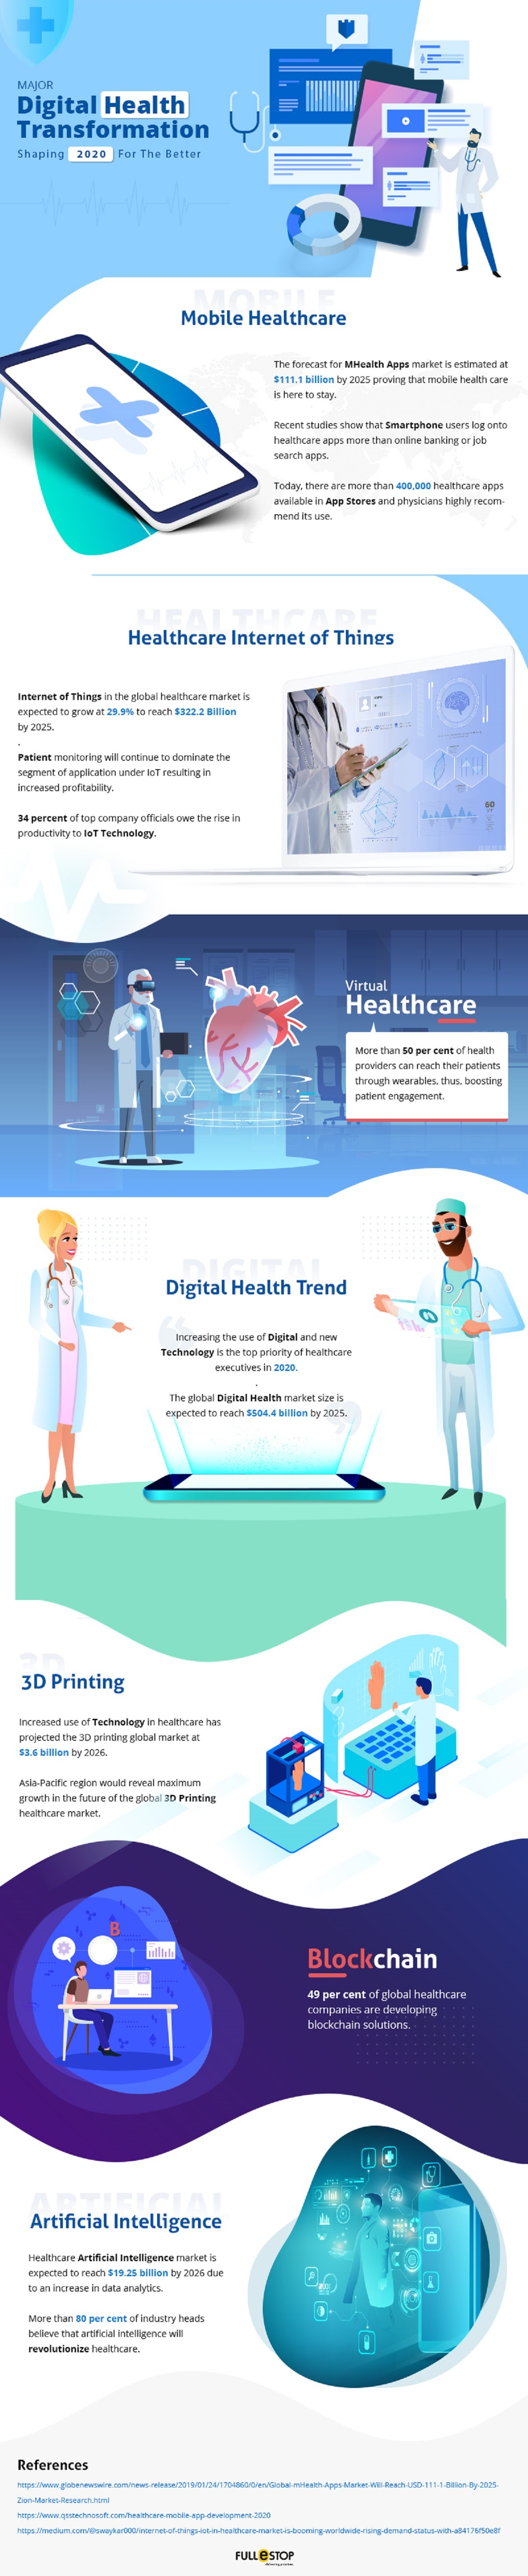 major-digital-health-transformations-shaping-2020-infographic